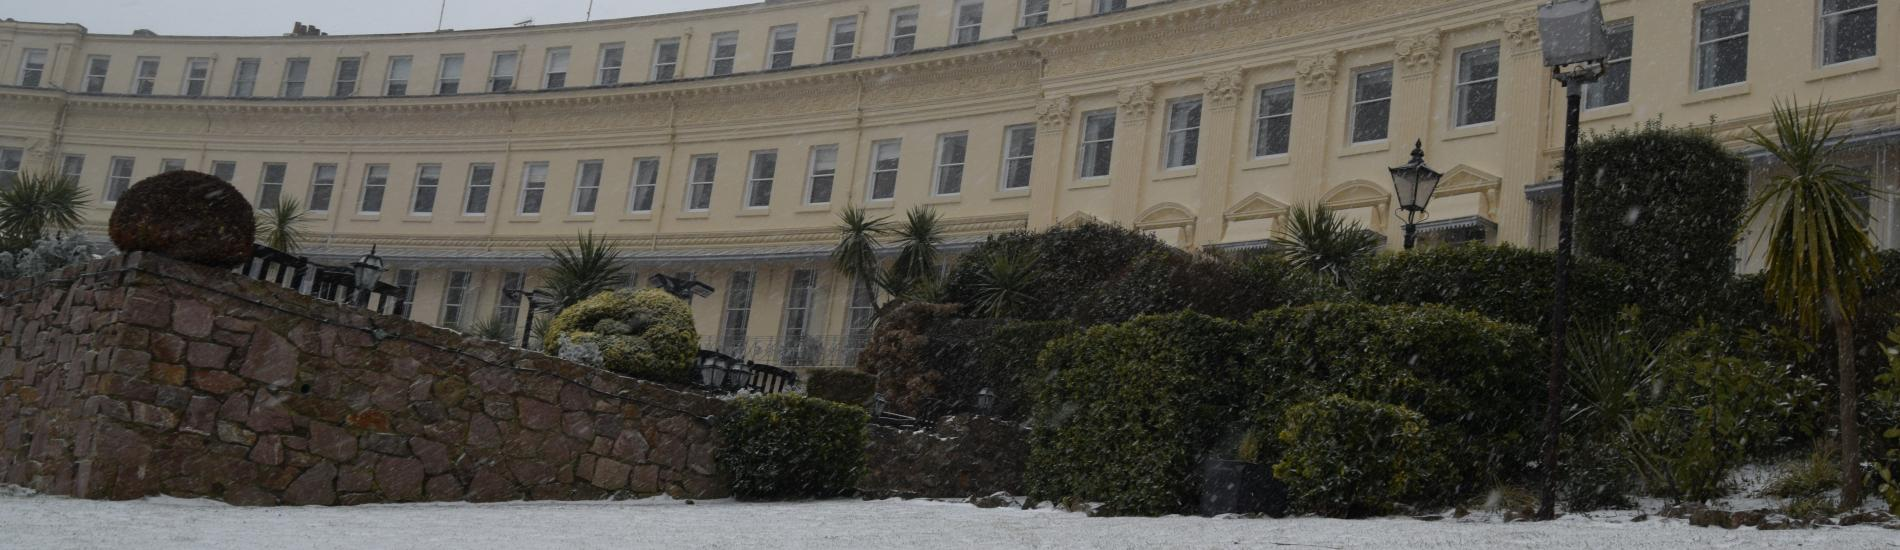 Osborne hotel front with grounds covered in snow